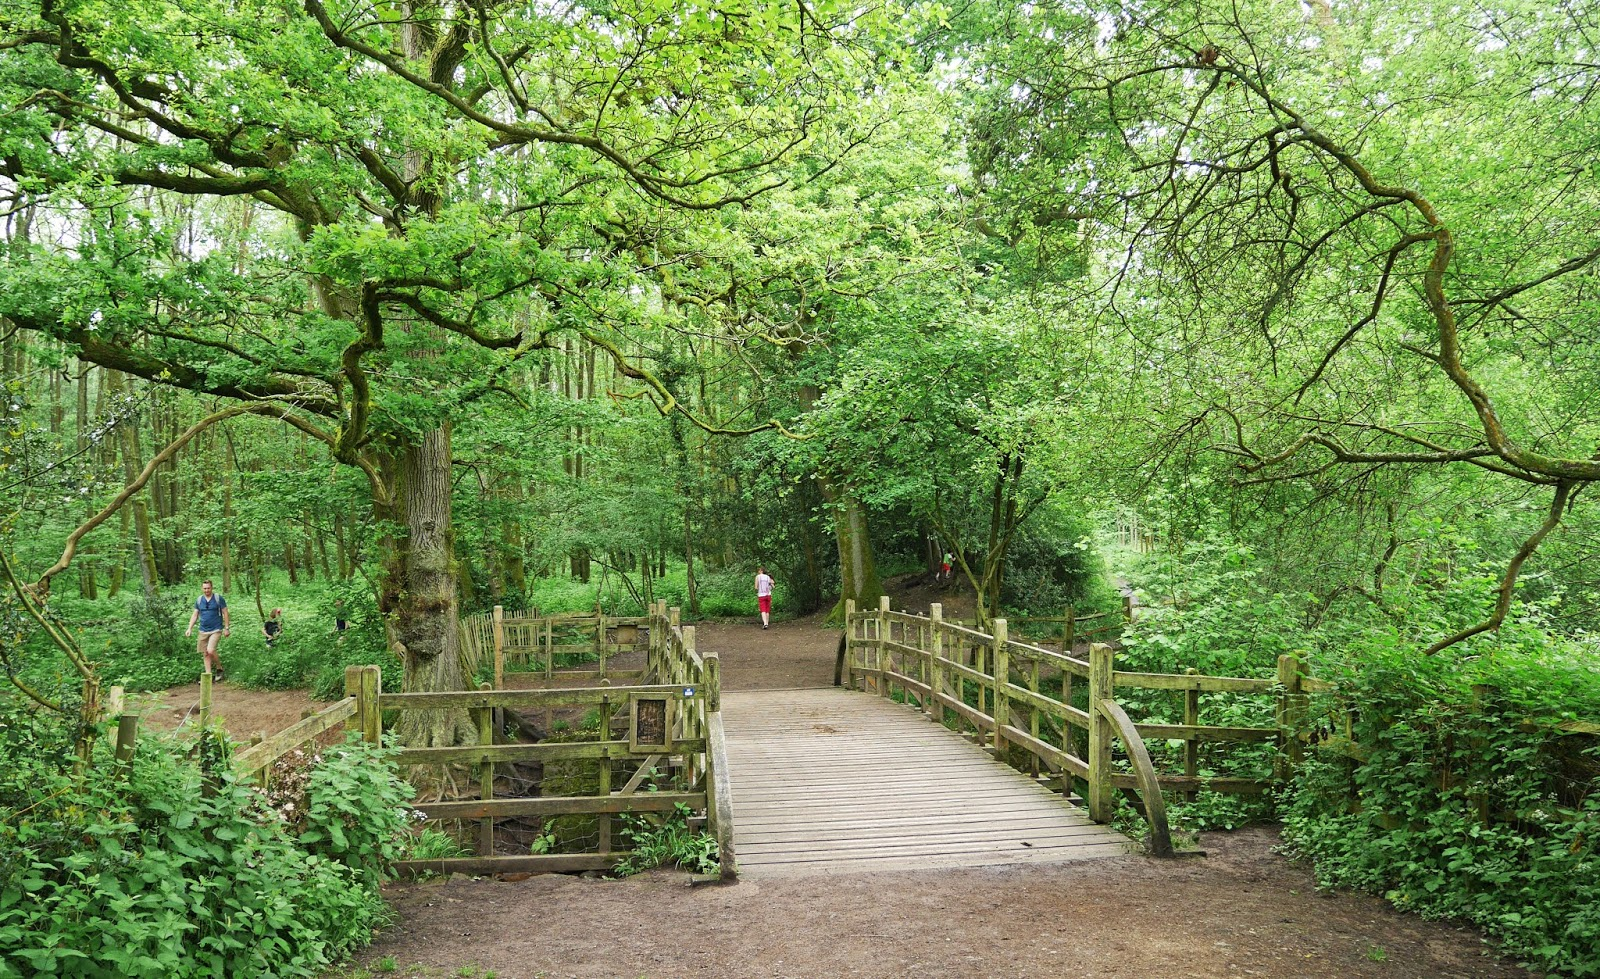 Pooh Bridge, Ashdown Forest